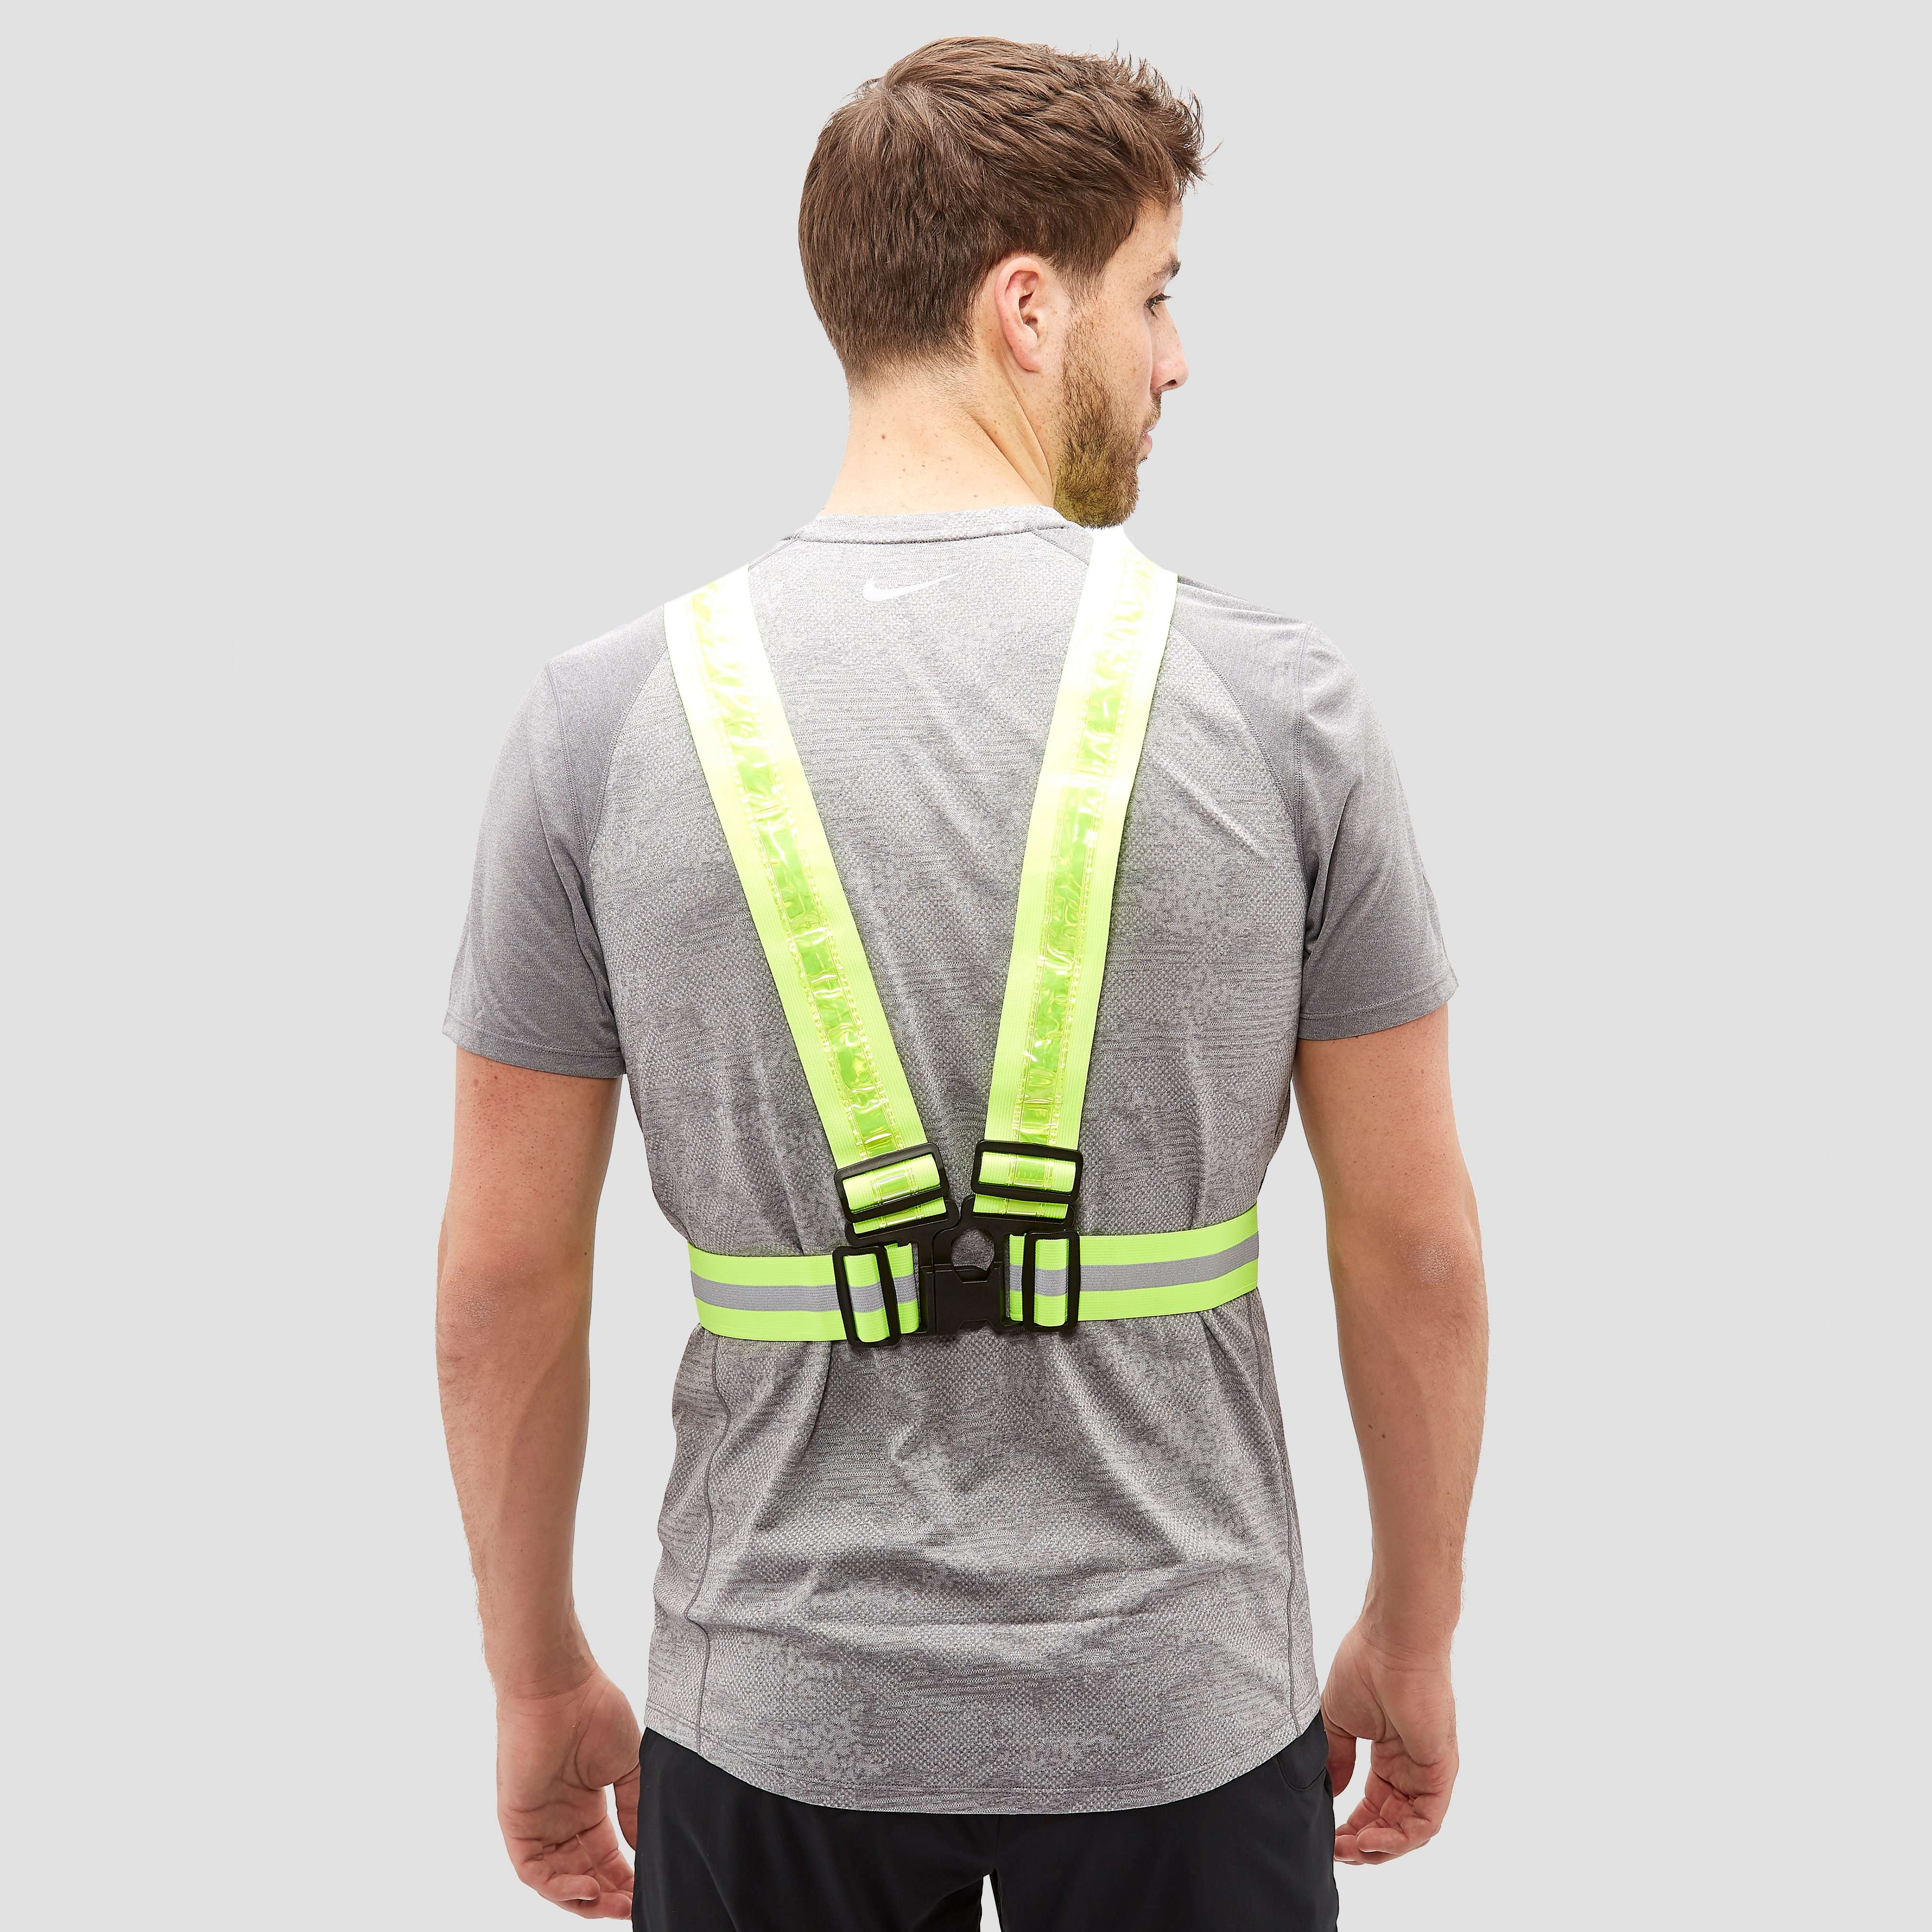 INQ RUNNING LED VEST